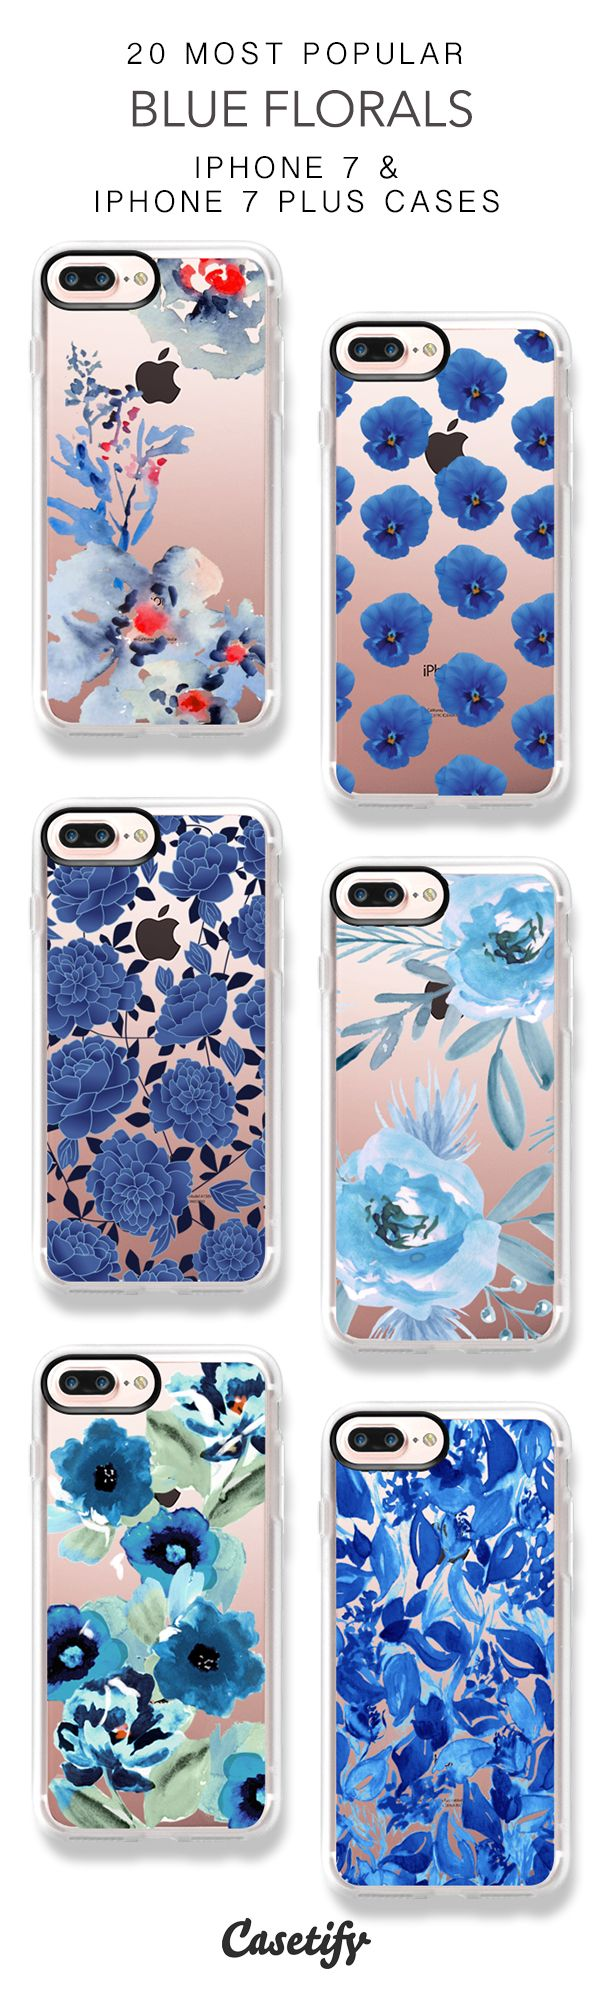 25 Most Popular Blue Florals iPhone 7 Cases and iPhone 7 Plus Cases. More Flower iPhone case here > https://www.casetify.com/collections/top_100_designs#/?vc=bwEeiSEmcg